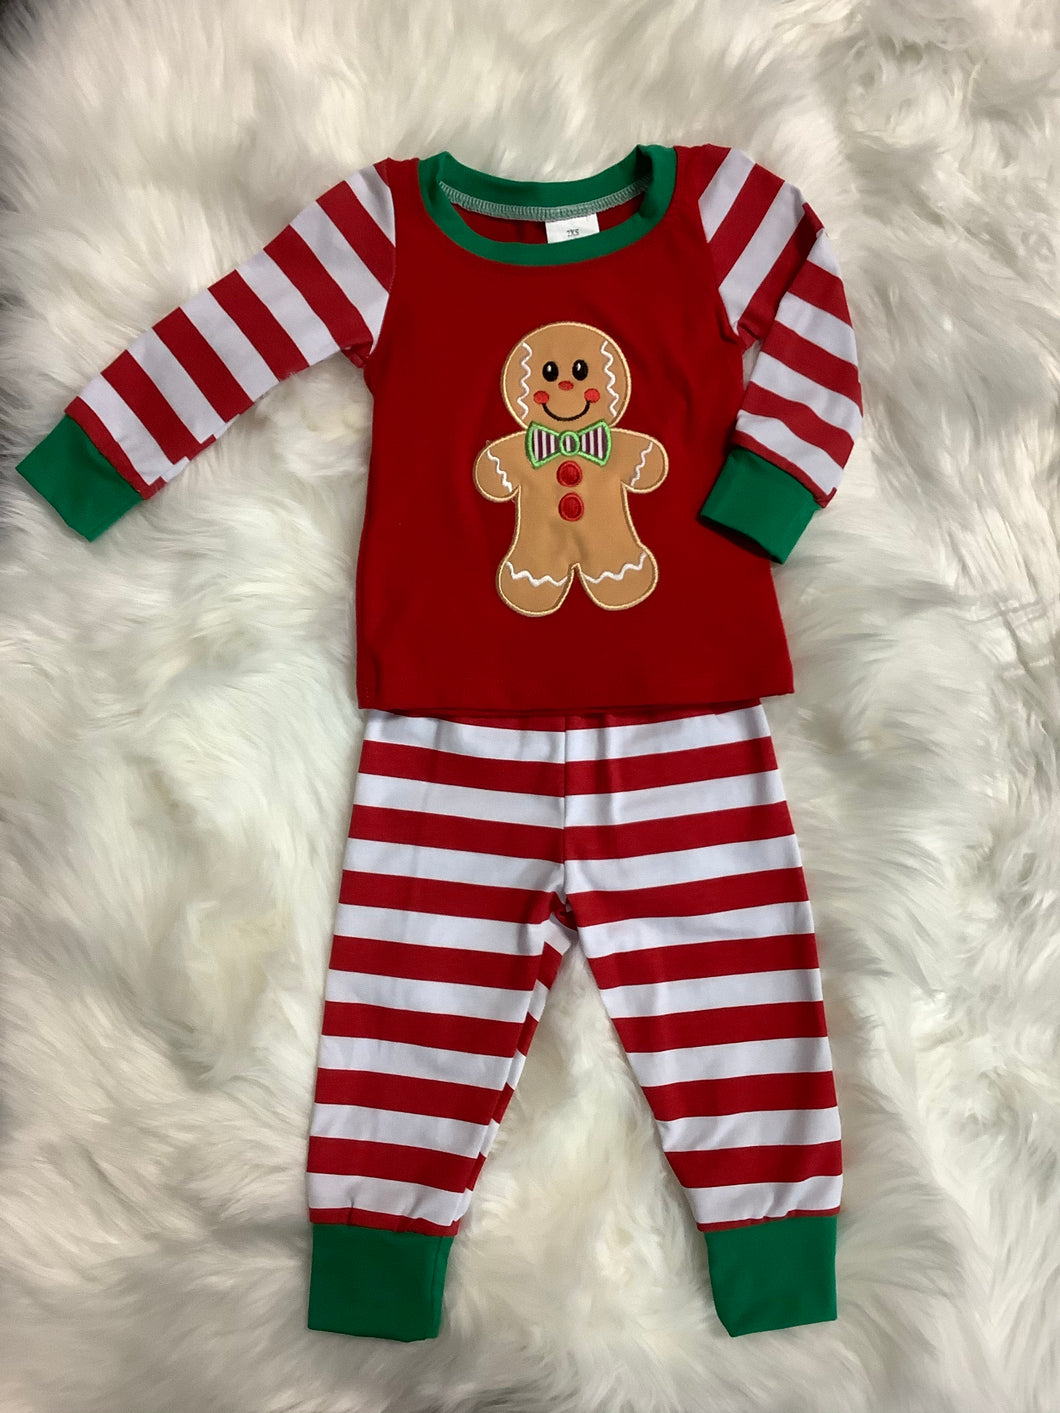 Mr. Gingy PJ's